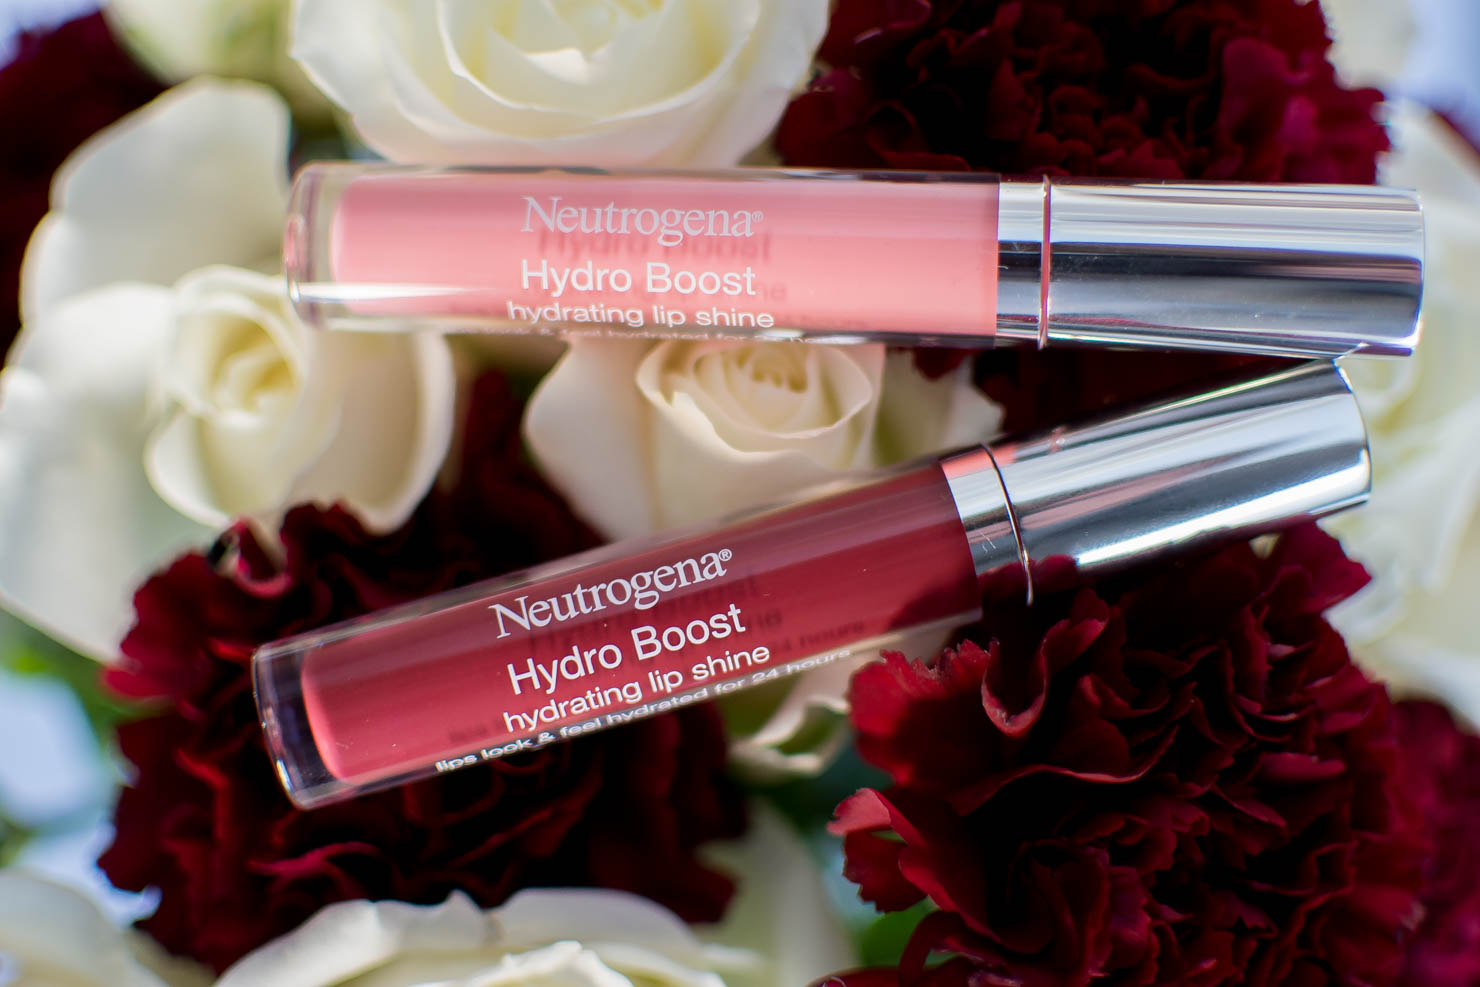 Neutrogena Hydro boost Makeup, the makeup thats better for your skin than no makeup at all, hydrates and plumps, makeup thats good for your skin